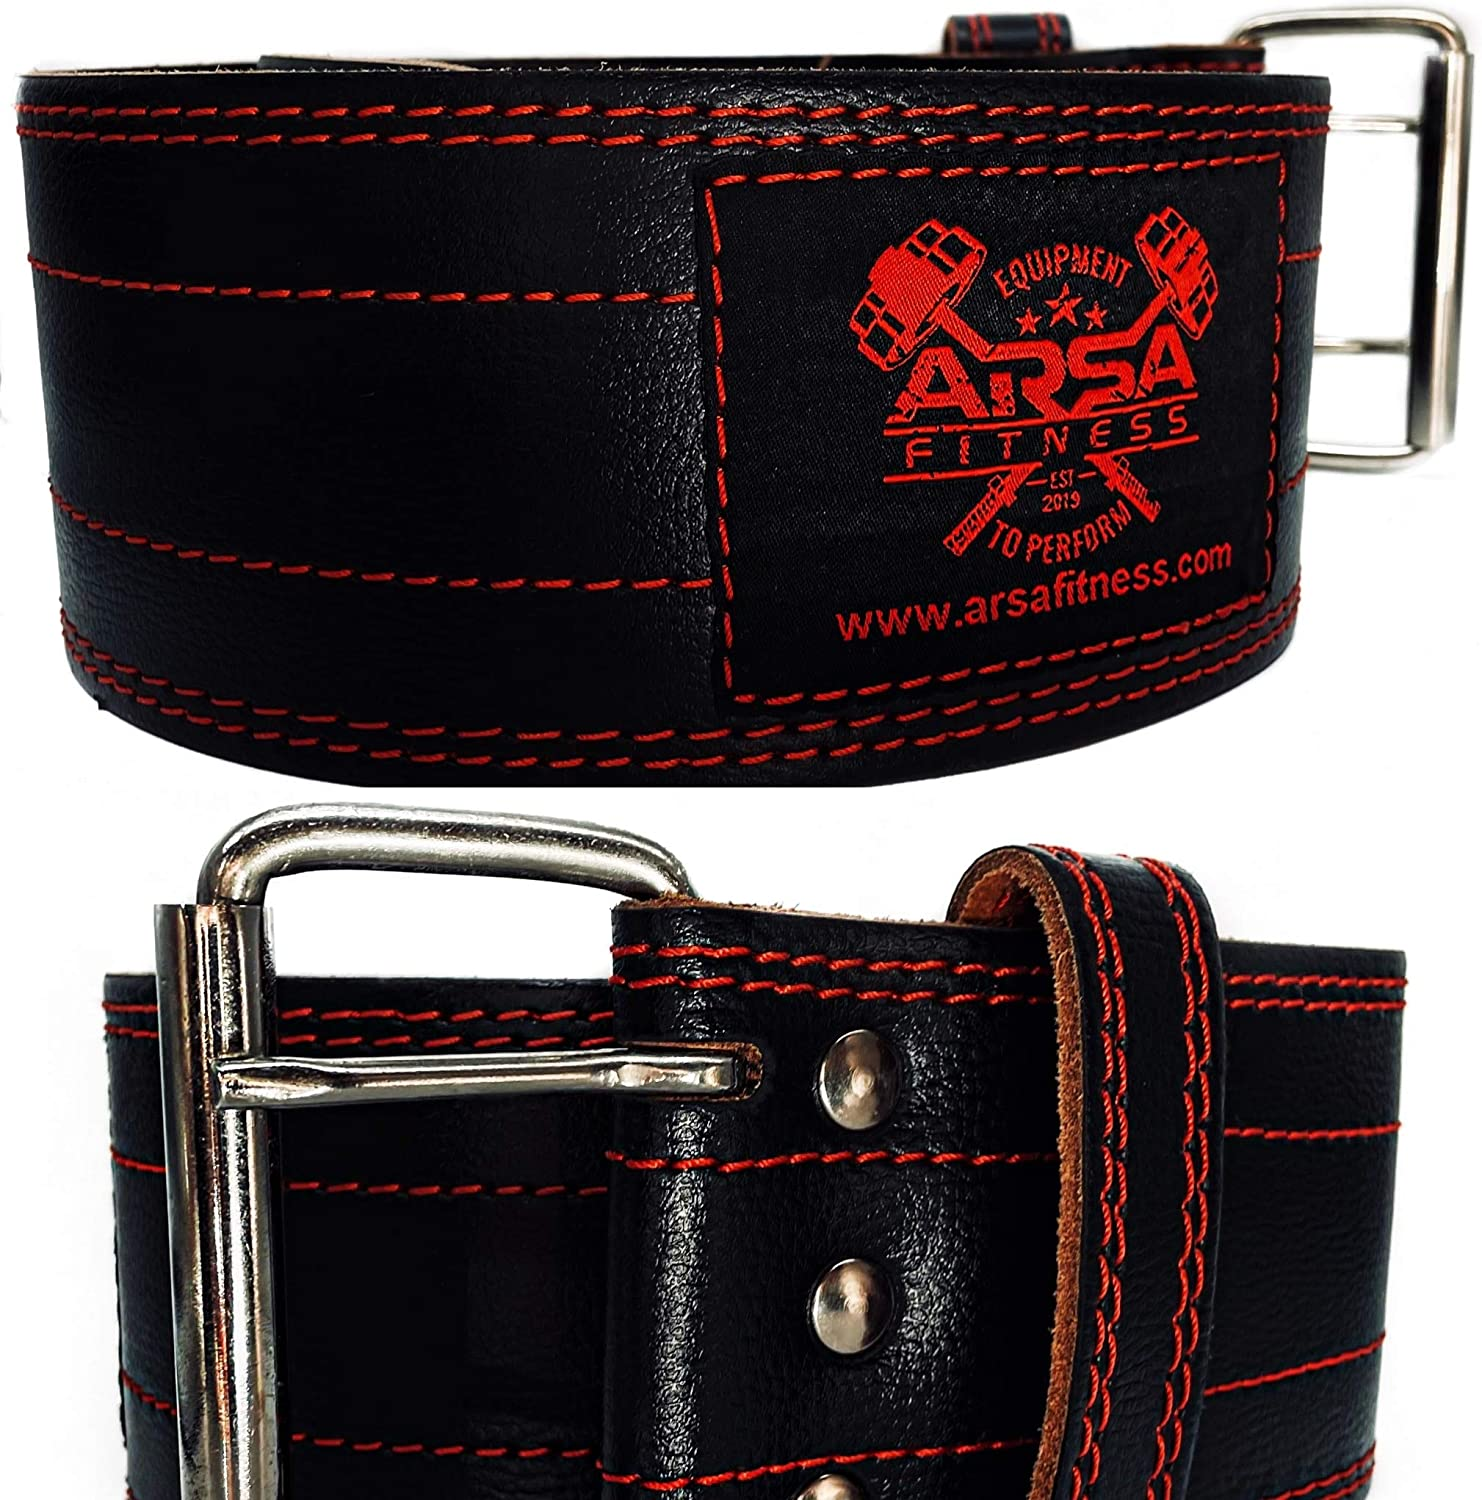 DreamCut Arsa Fitness Weightlifting Belt with RedSkull Buckl New York Mall 2.0 Limited time for free shipping